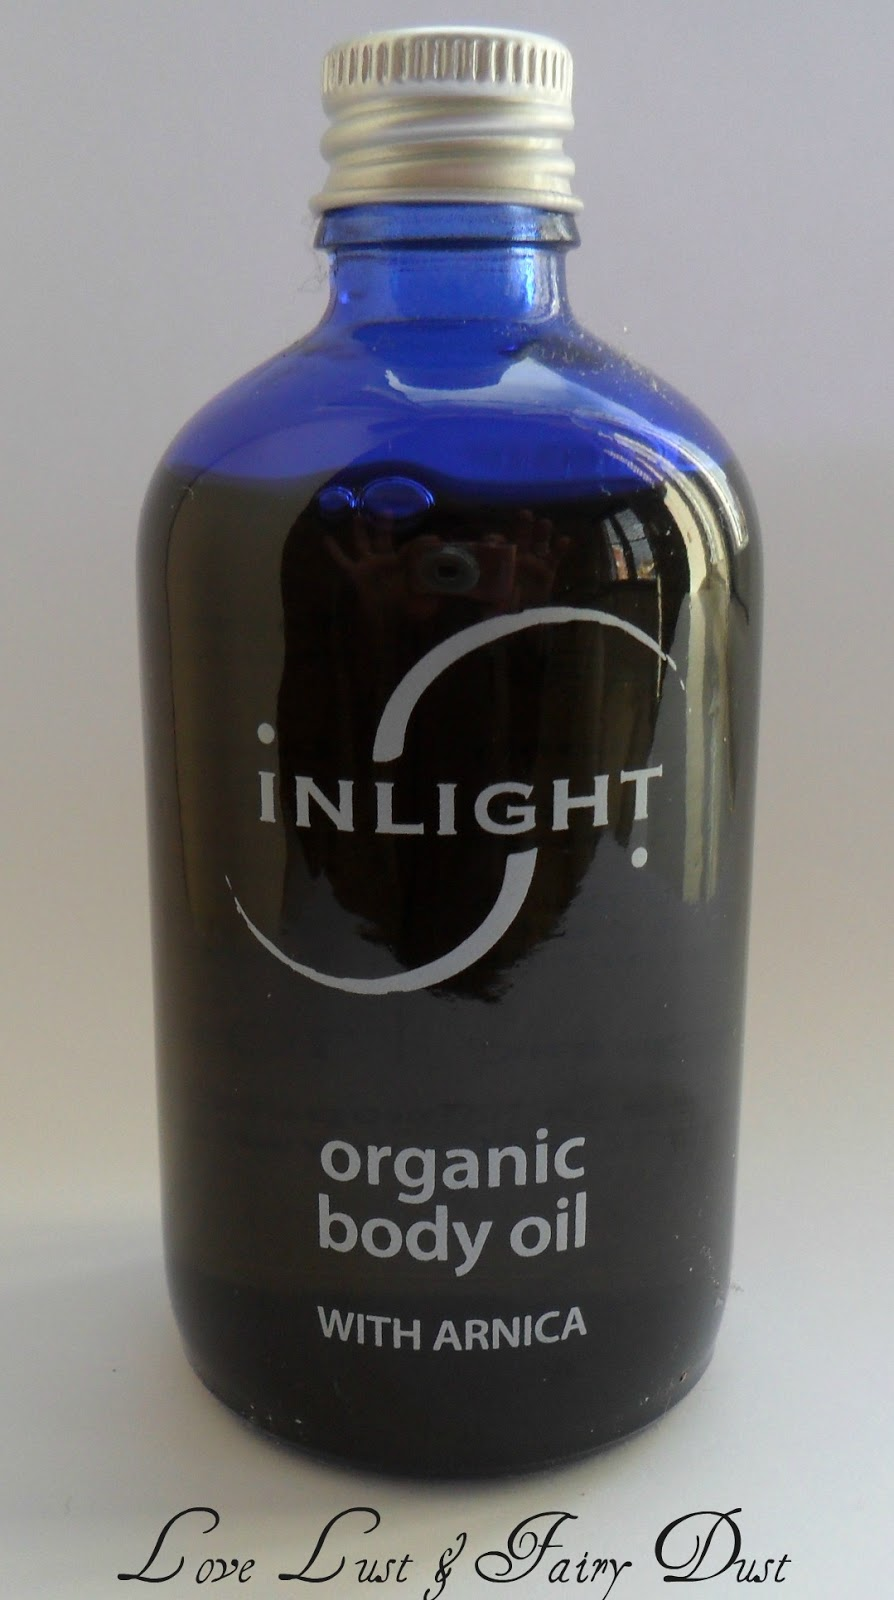 Inlight Organic Body Oil With Arnica